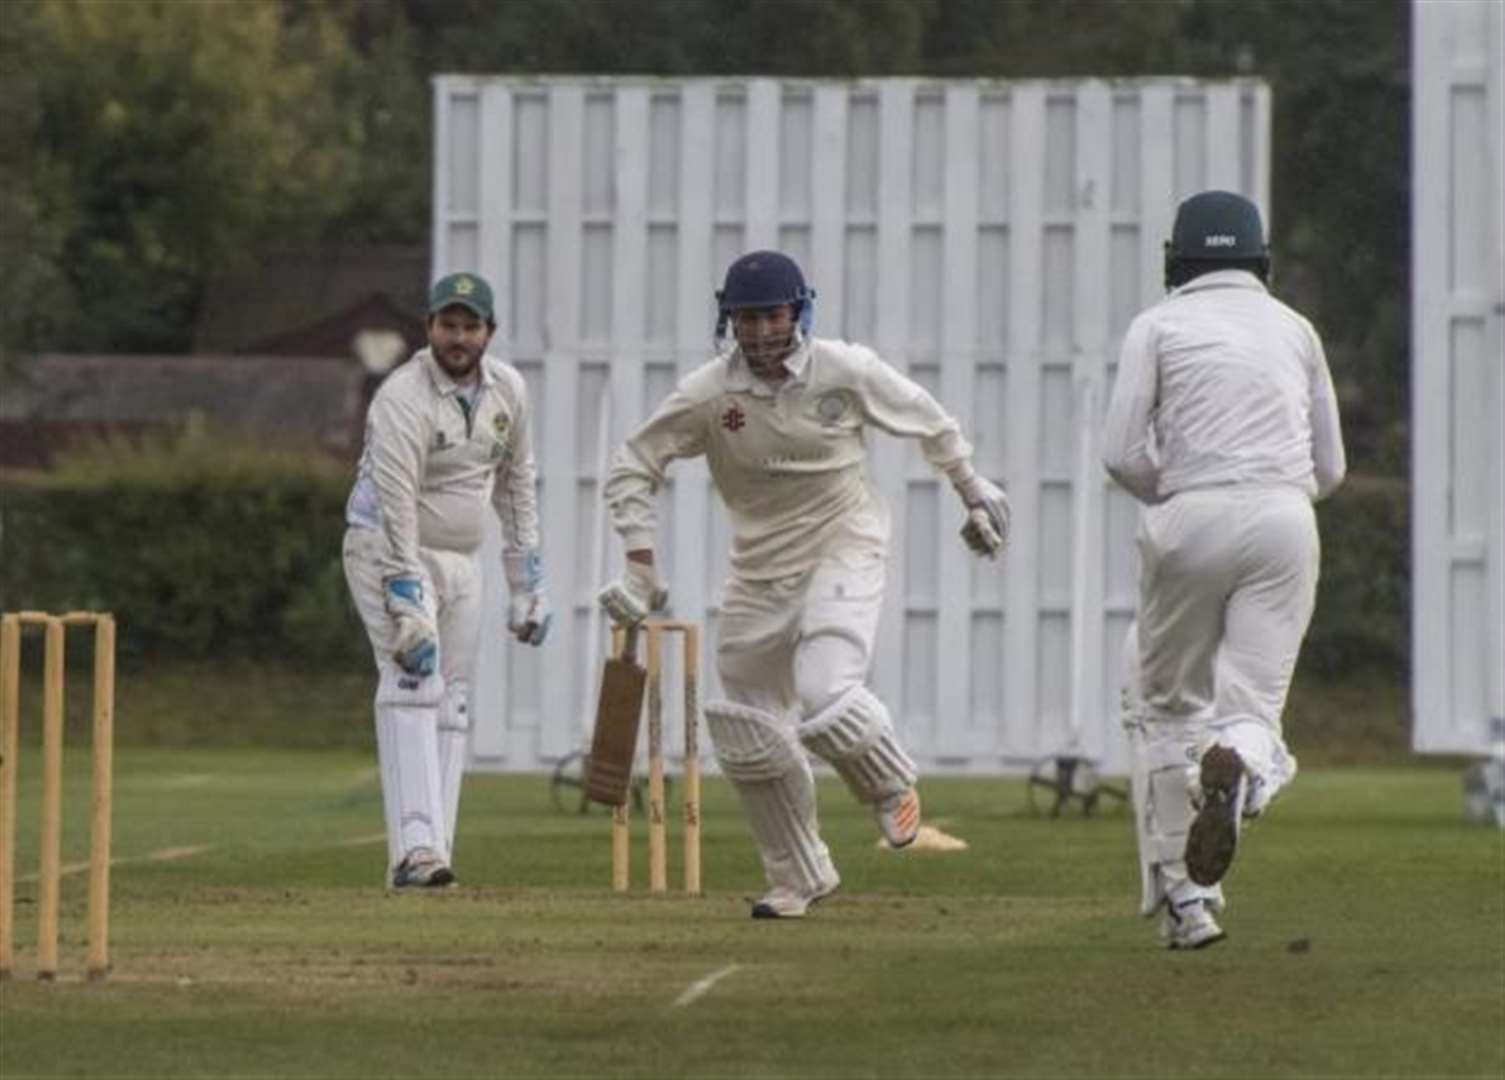 Sawston & Babraham bowled over with win over Waresley